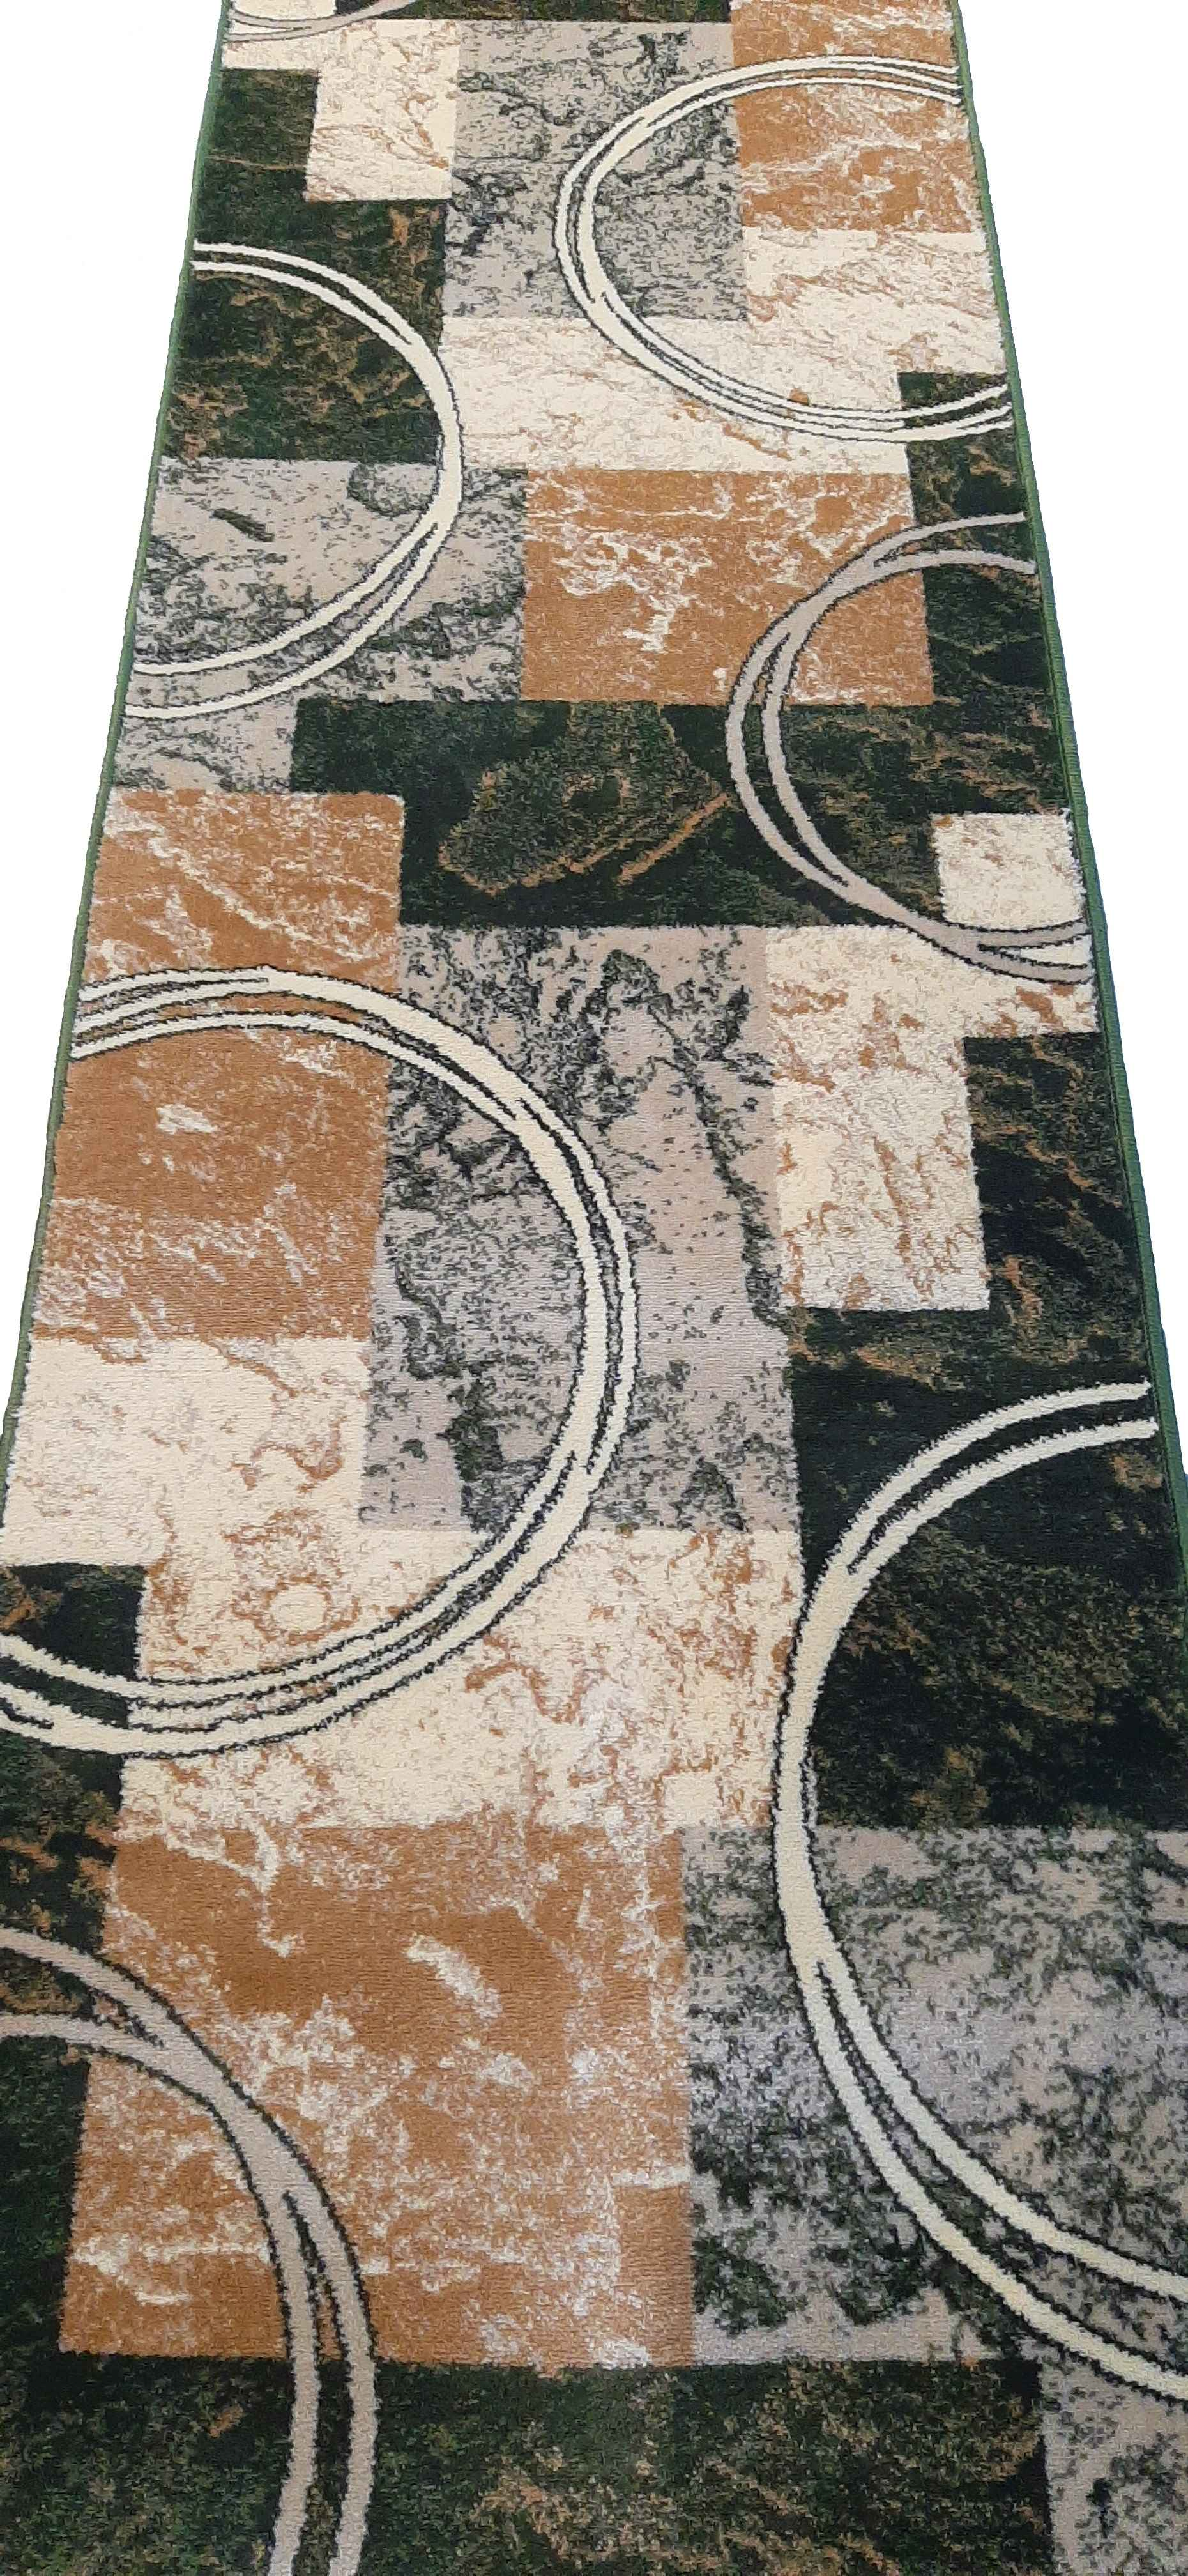 Traversa Lotos 15001, Verde, 100x900 cm, 1800 gr/mp 1